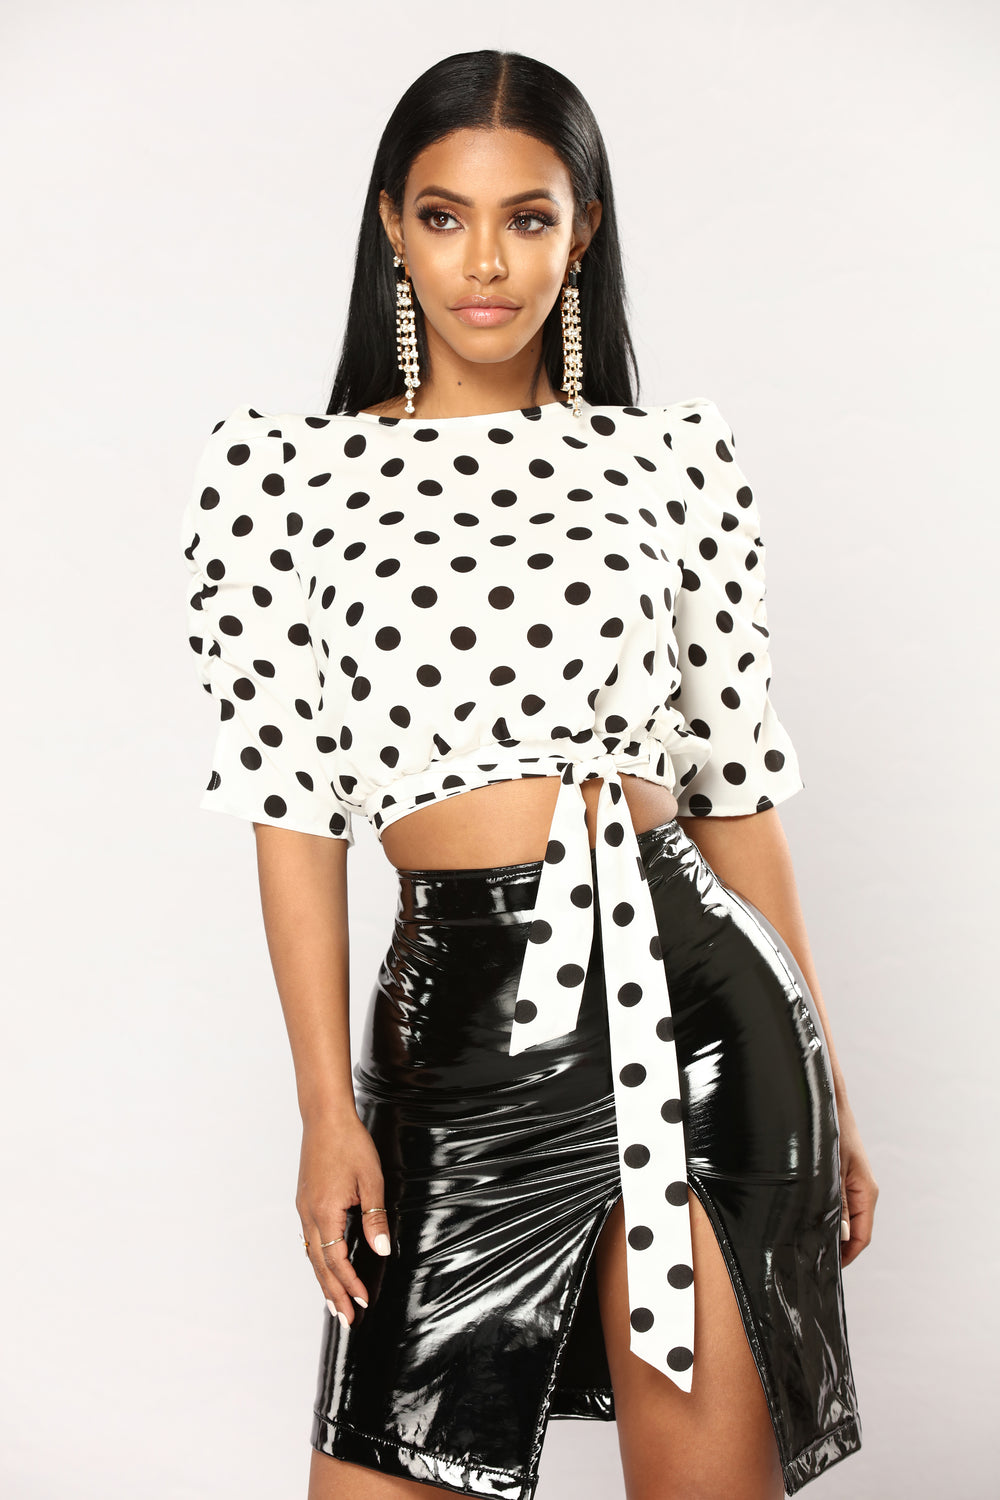 De Vil Polka Dot Top - White/Black